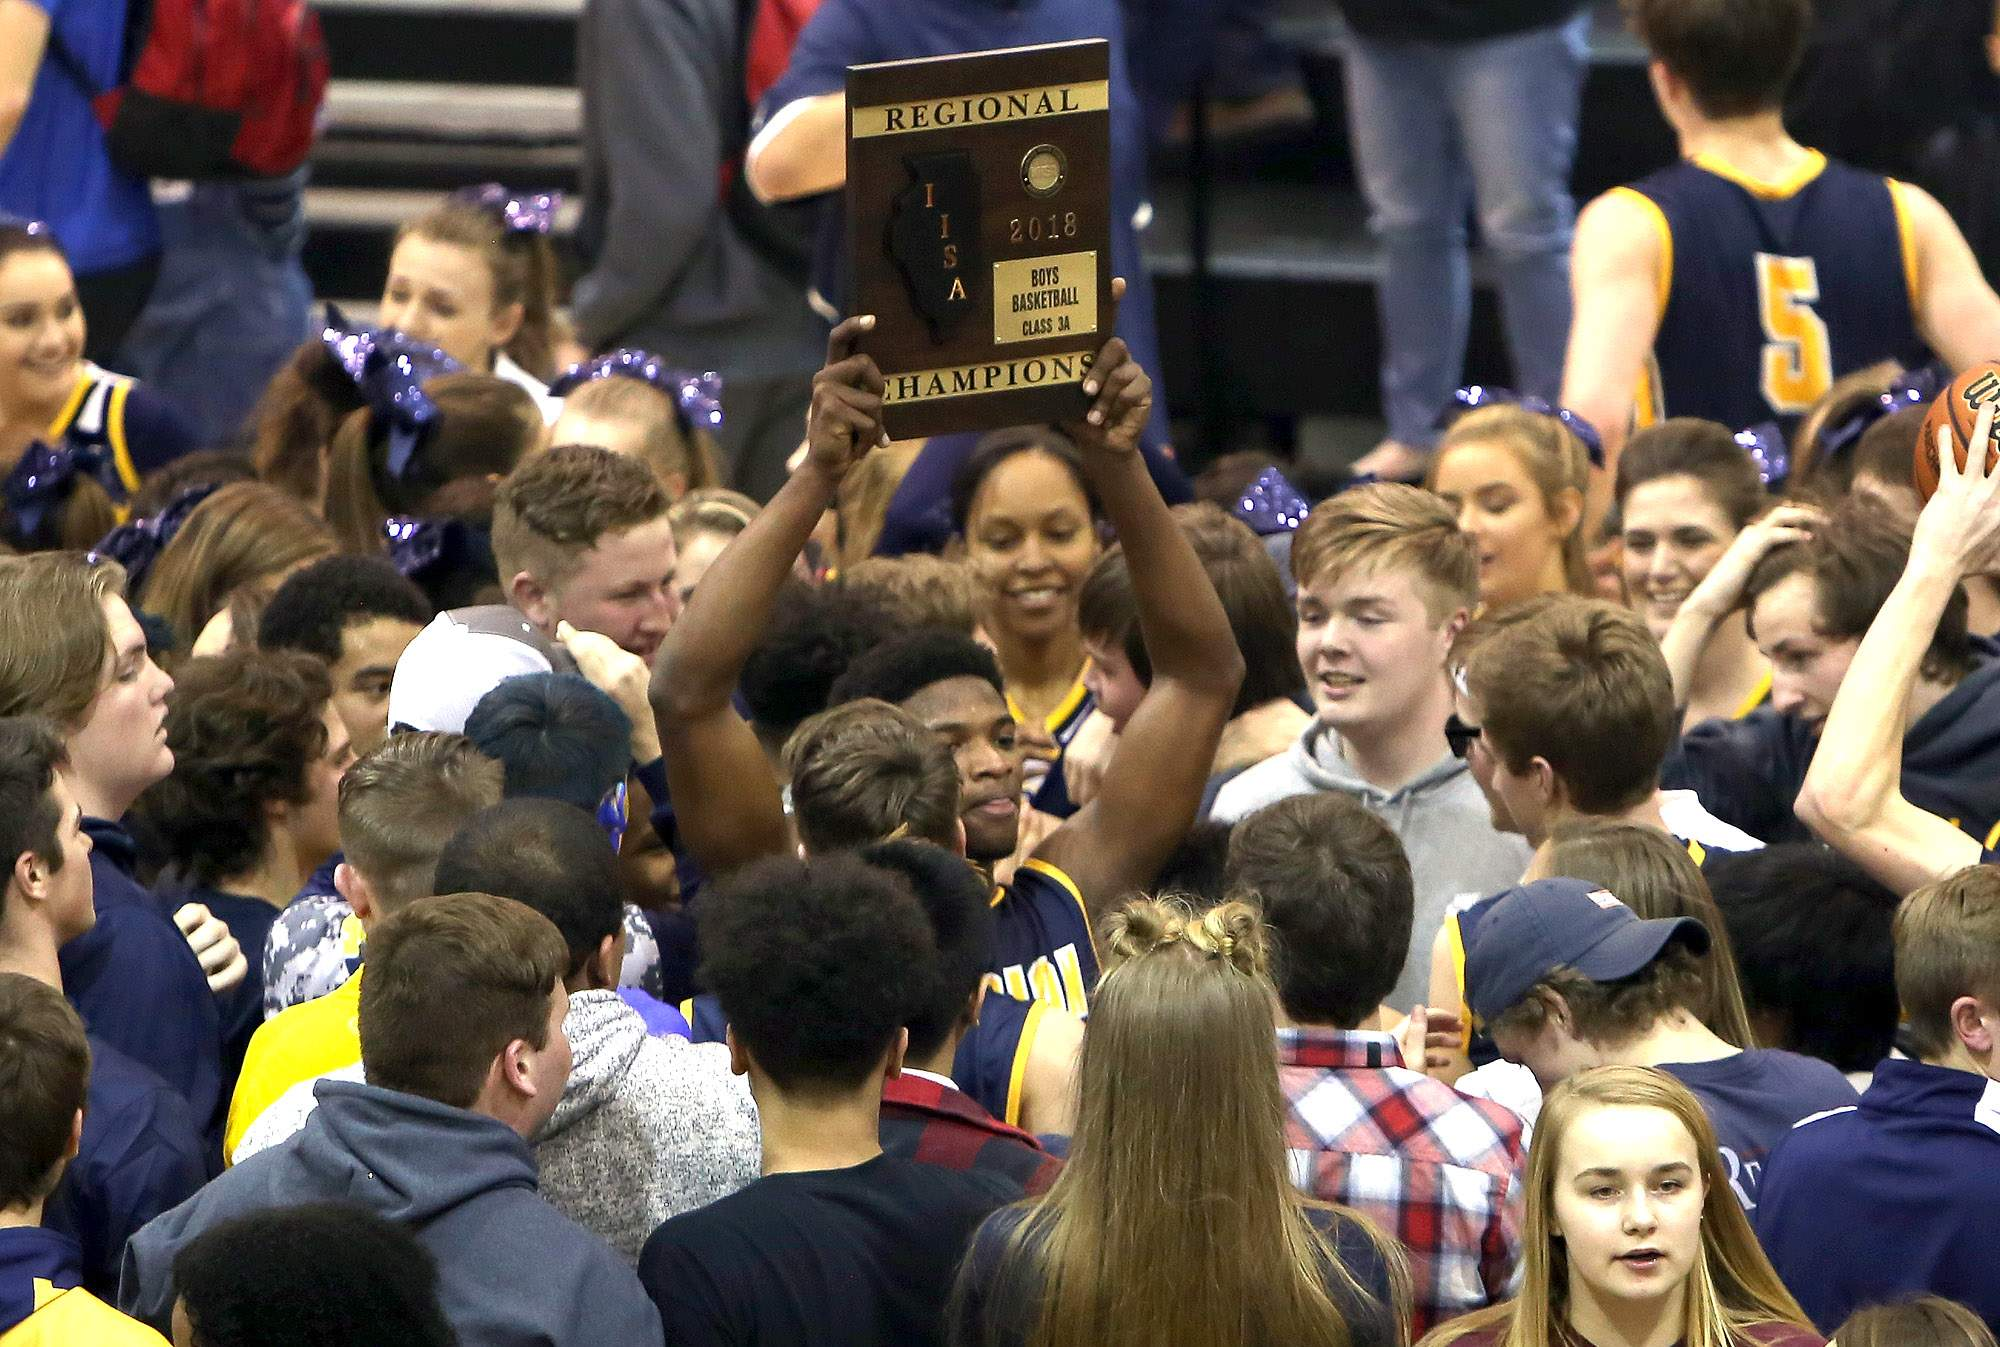 Marion senior Jaden Lacy holds up the Carbondale Regional championship plaque after Friday's win.